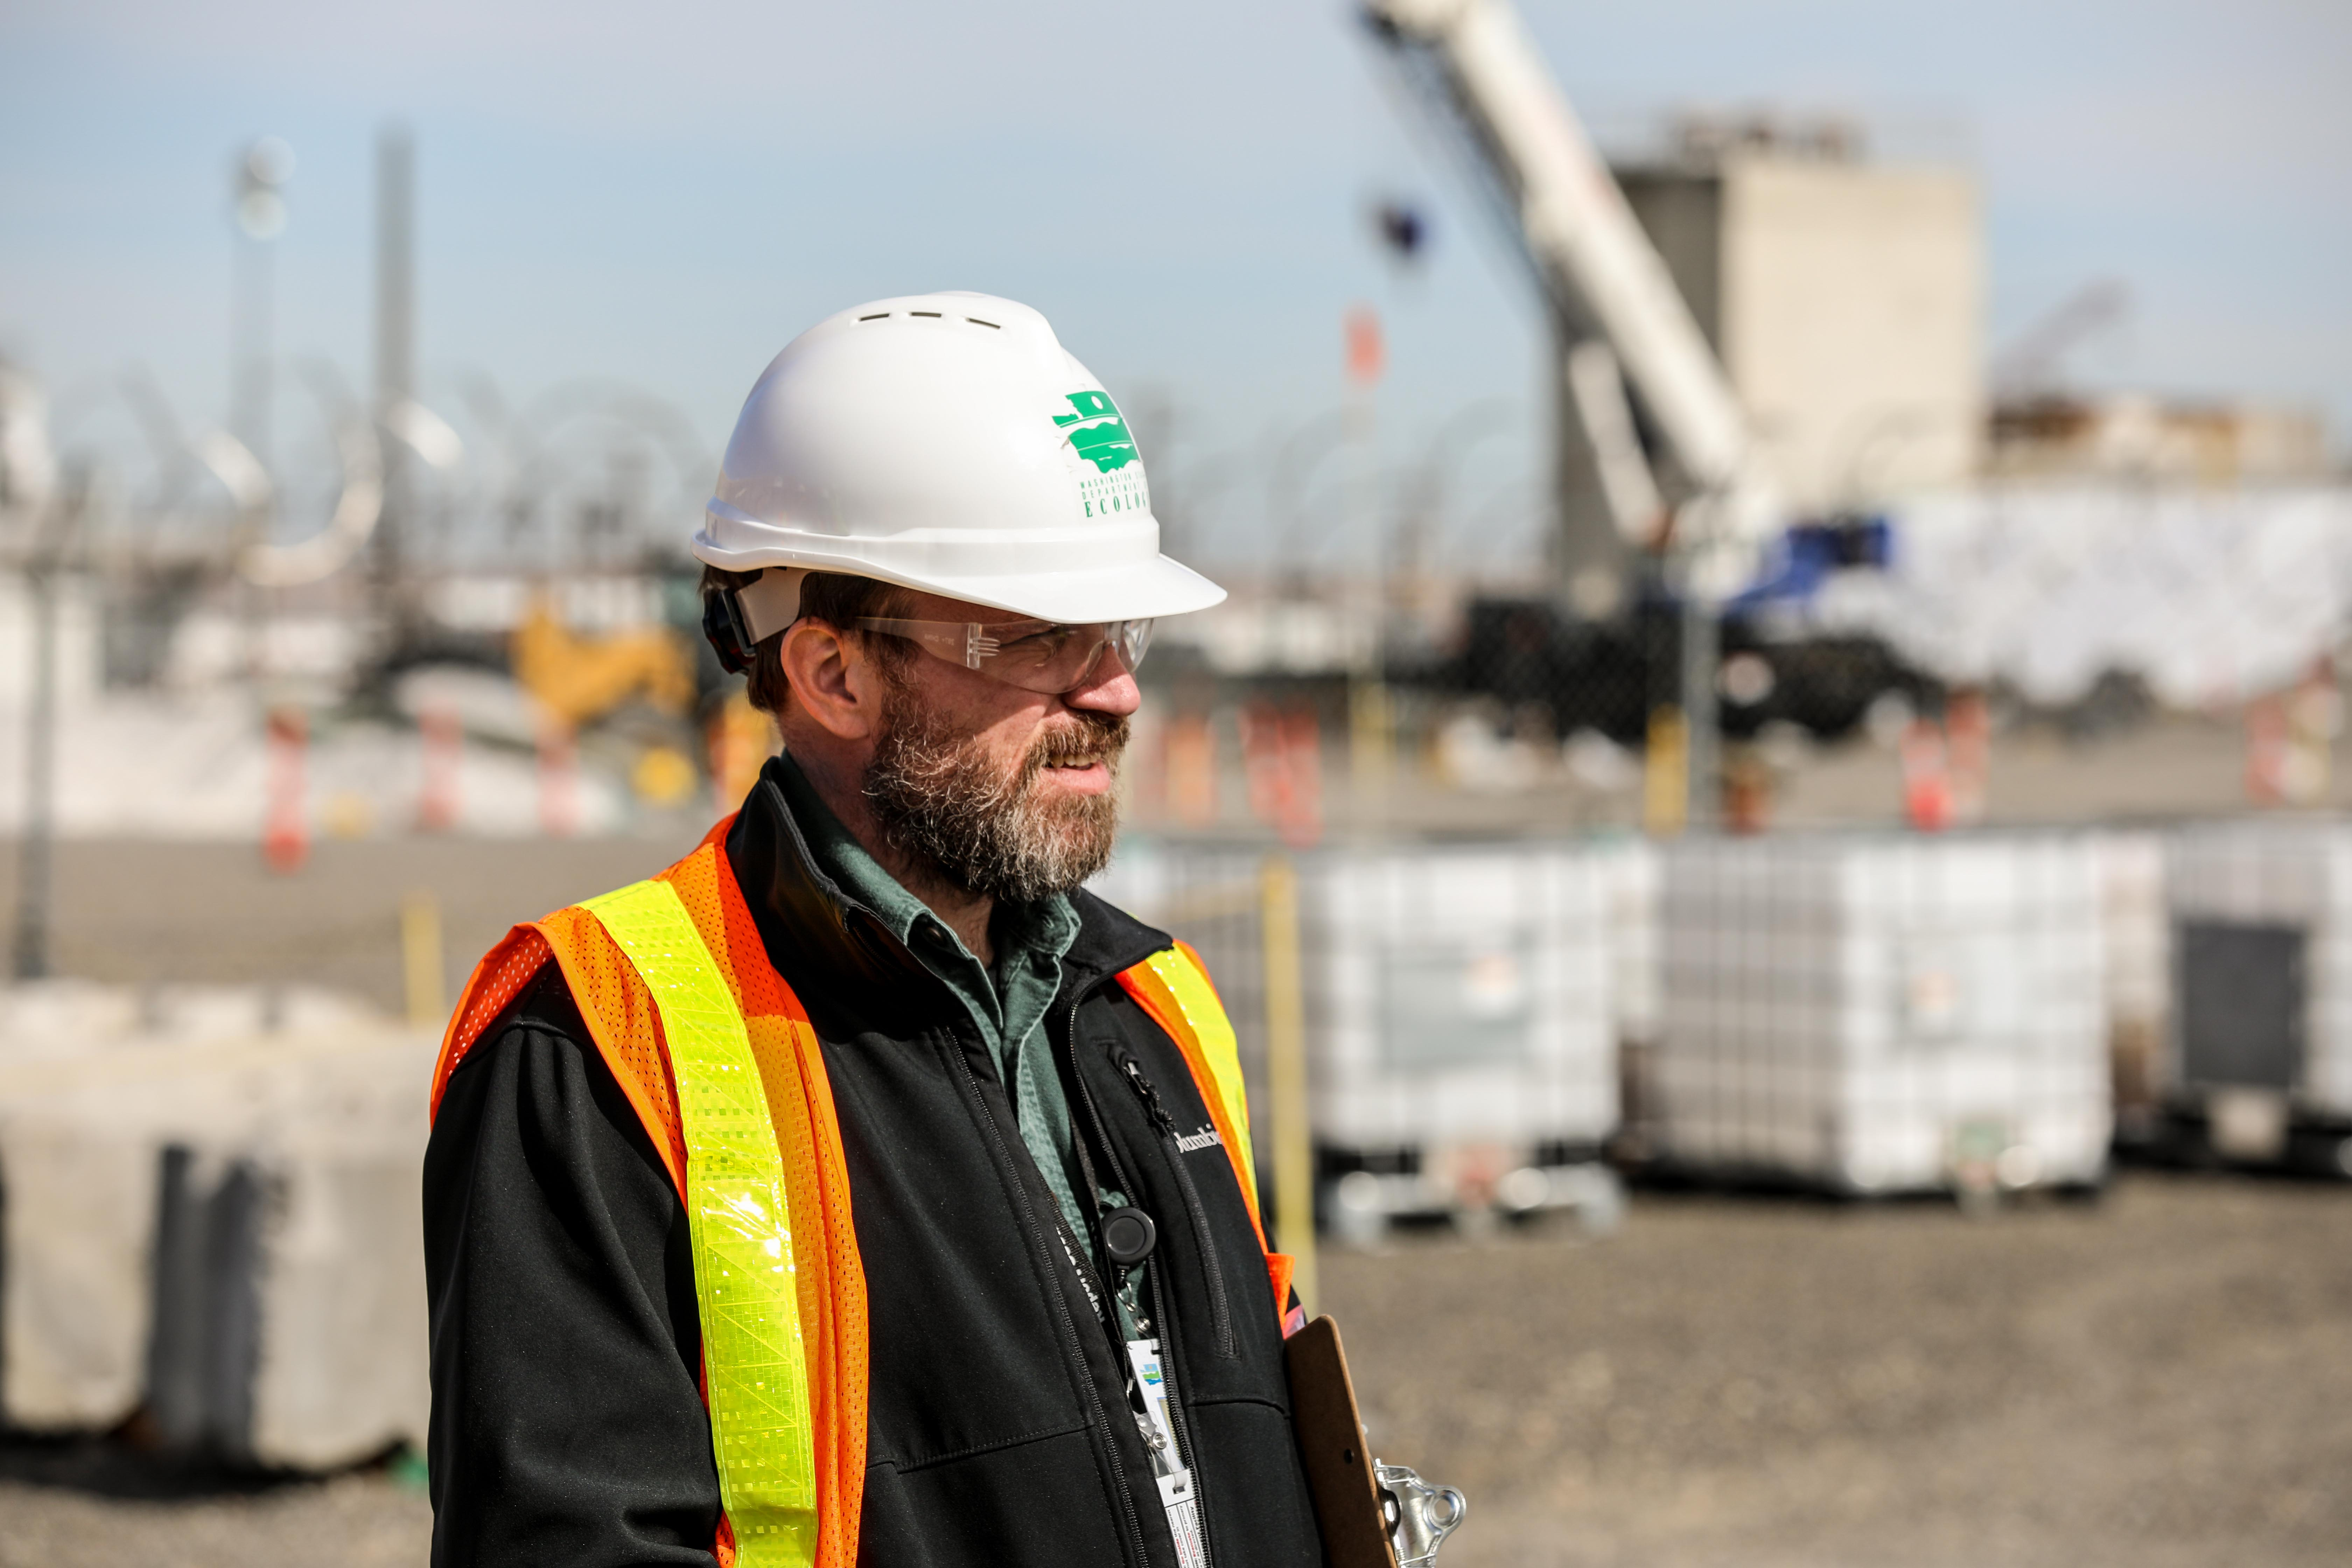 When Nuclear Waste Program inspectors are on site at Hanford,  they need access to critical information in real time in order to  provide effective, efficient regulatory guidance.